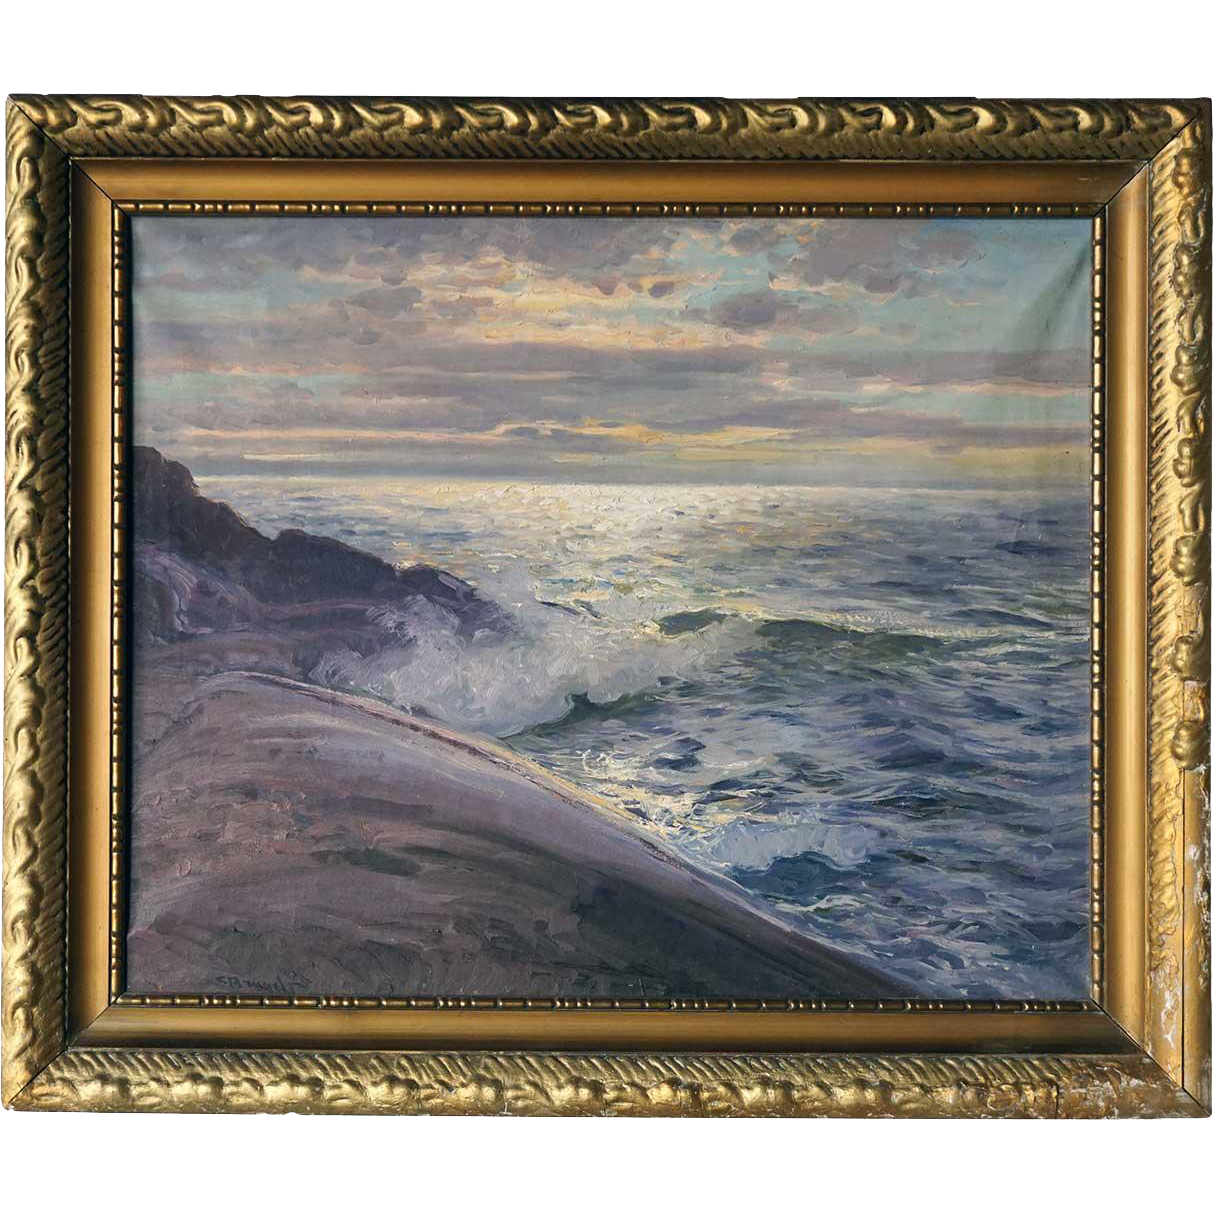 CARL BRANDT Oil on Canvas Painting, Crashing Waves